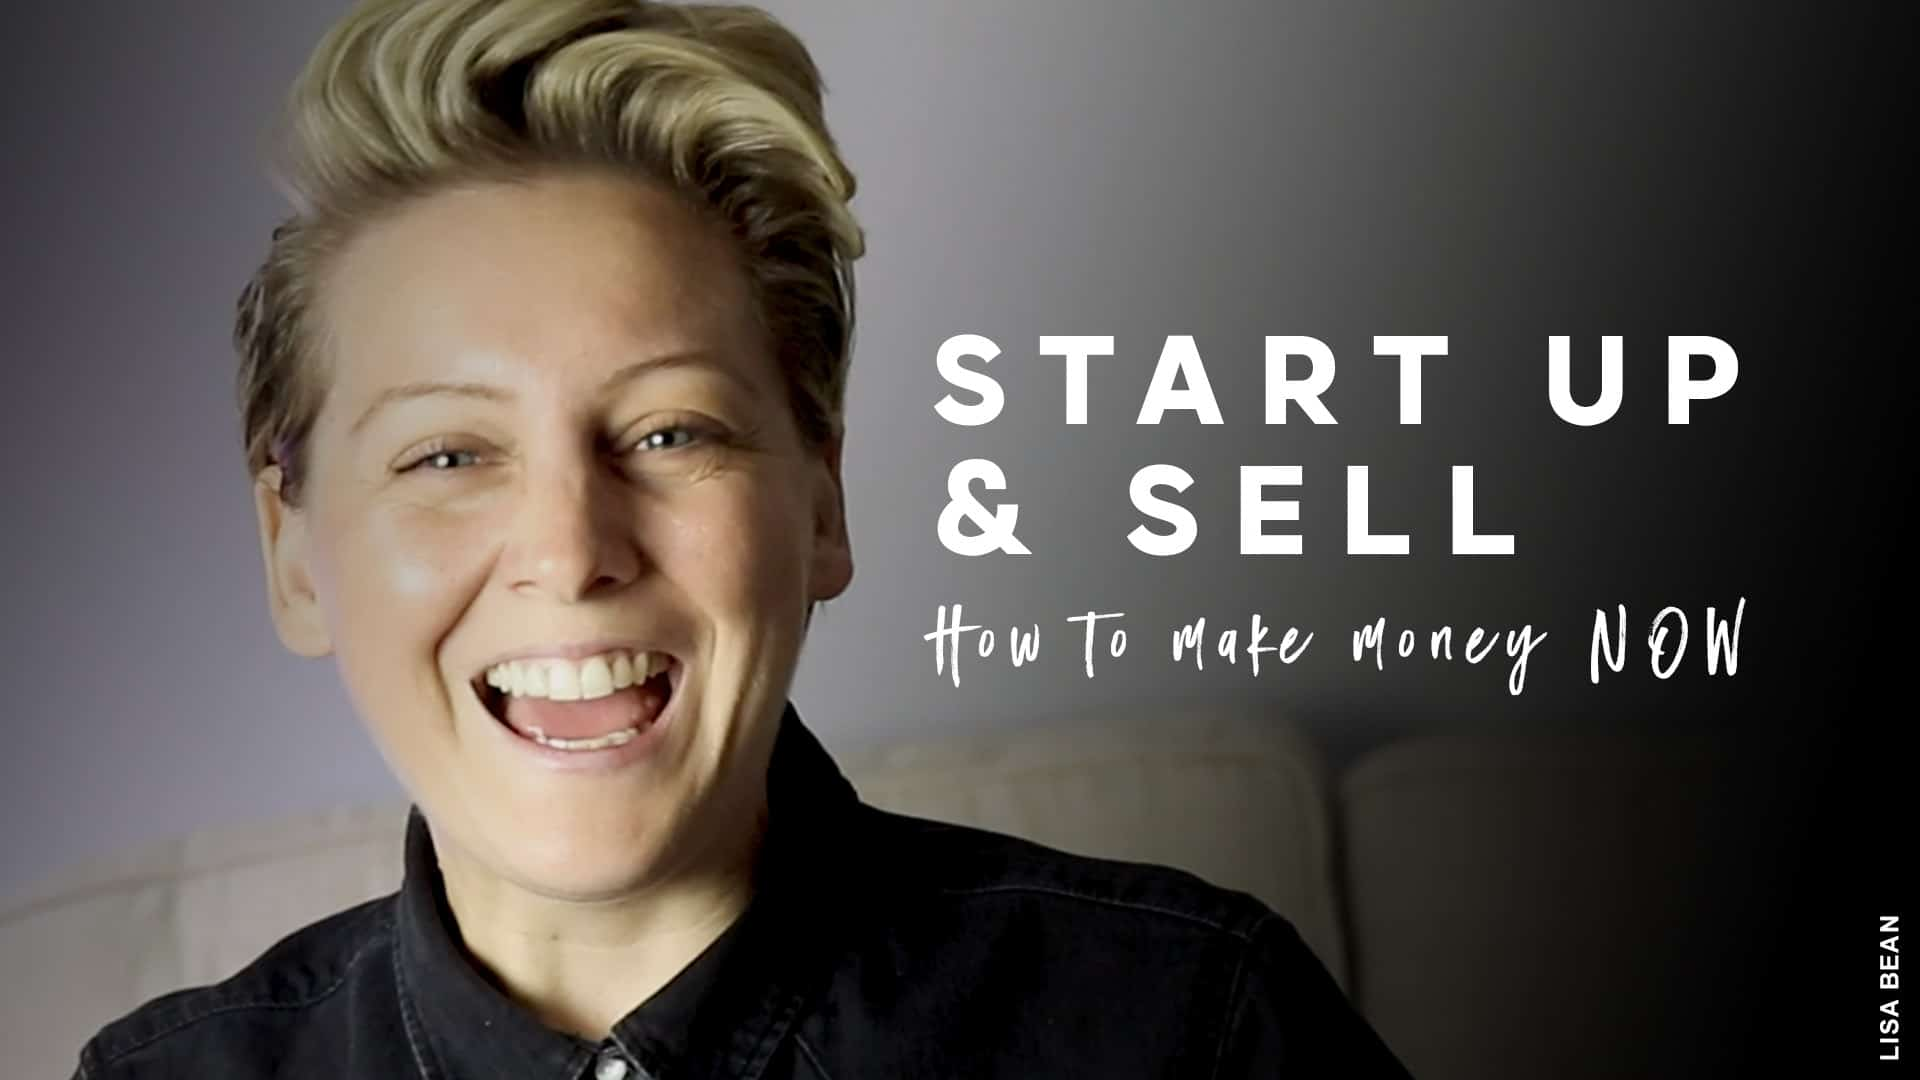 How to get your start up off the ground